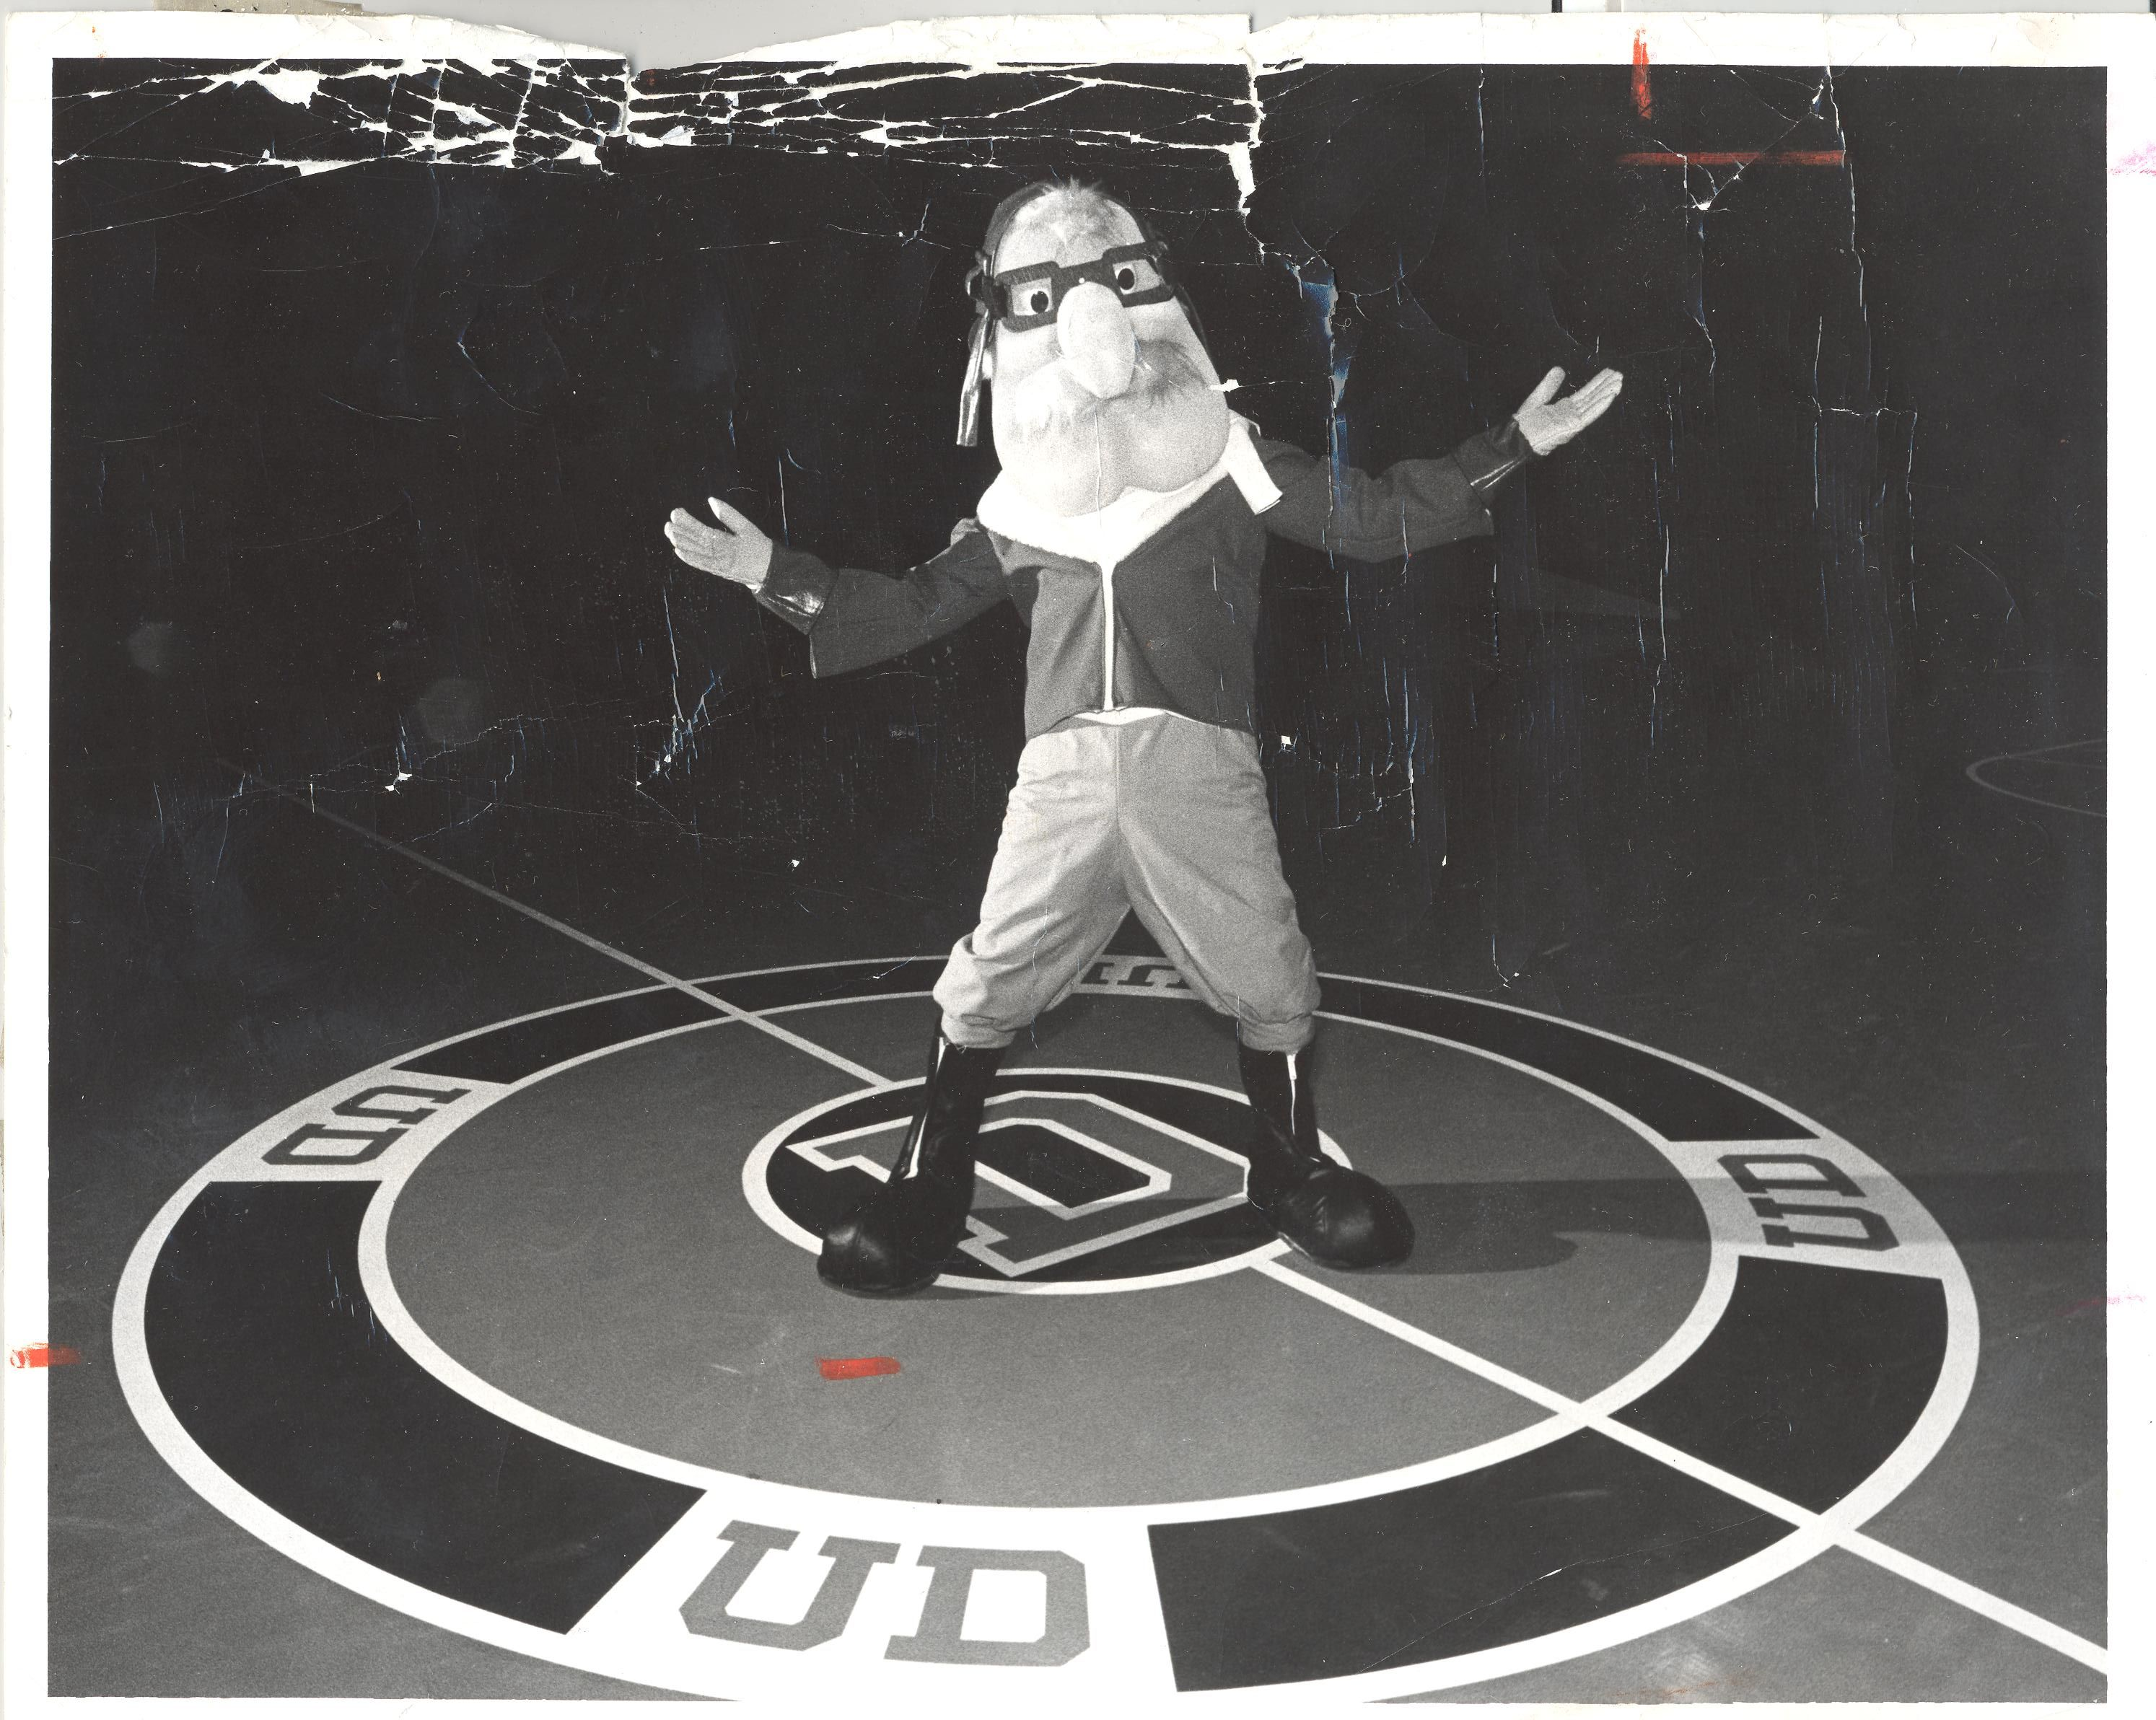 Dayton Flyers mascot, Rudy Flyer, back in the day